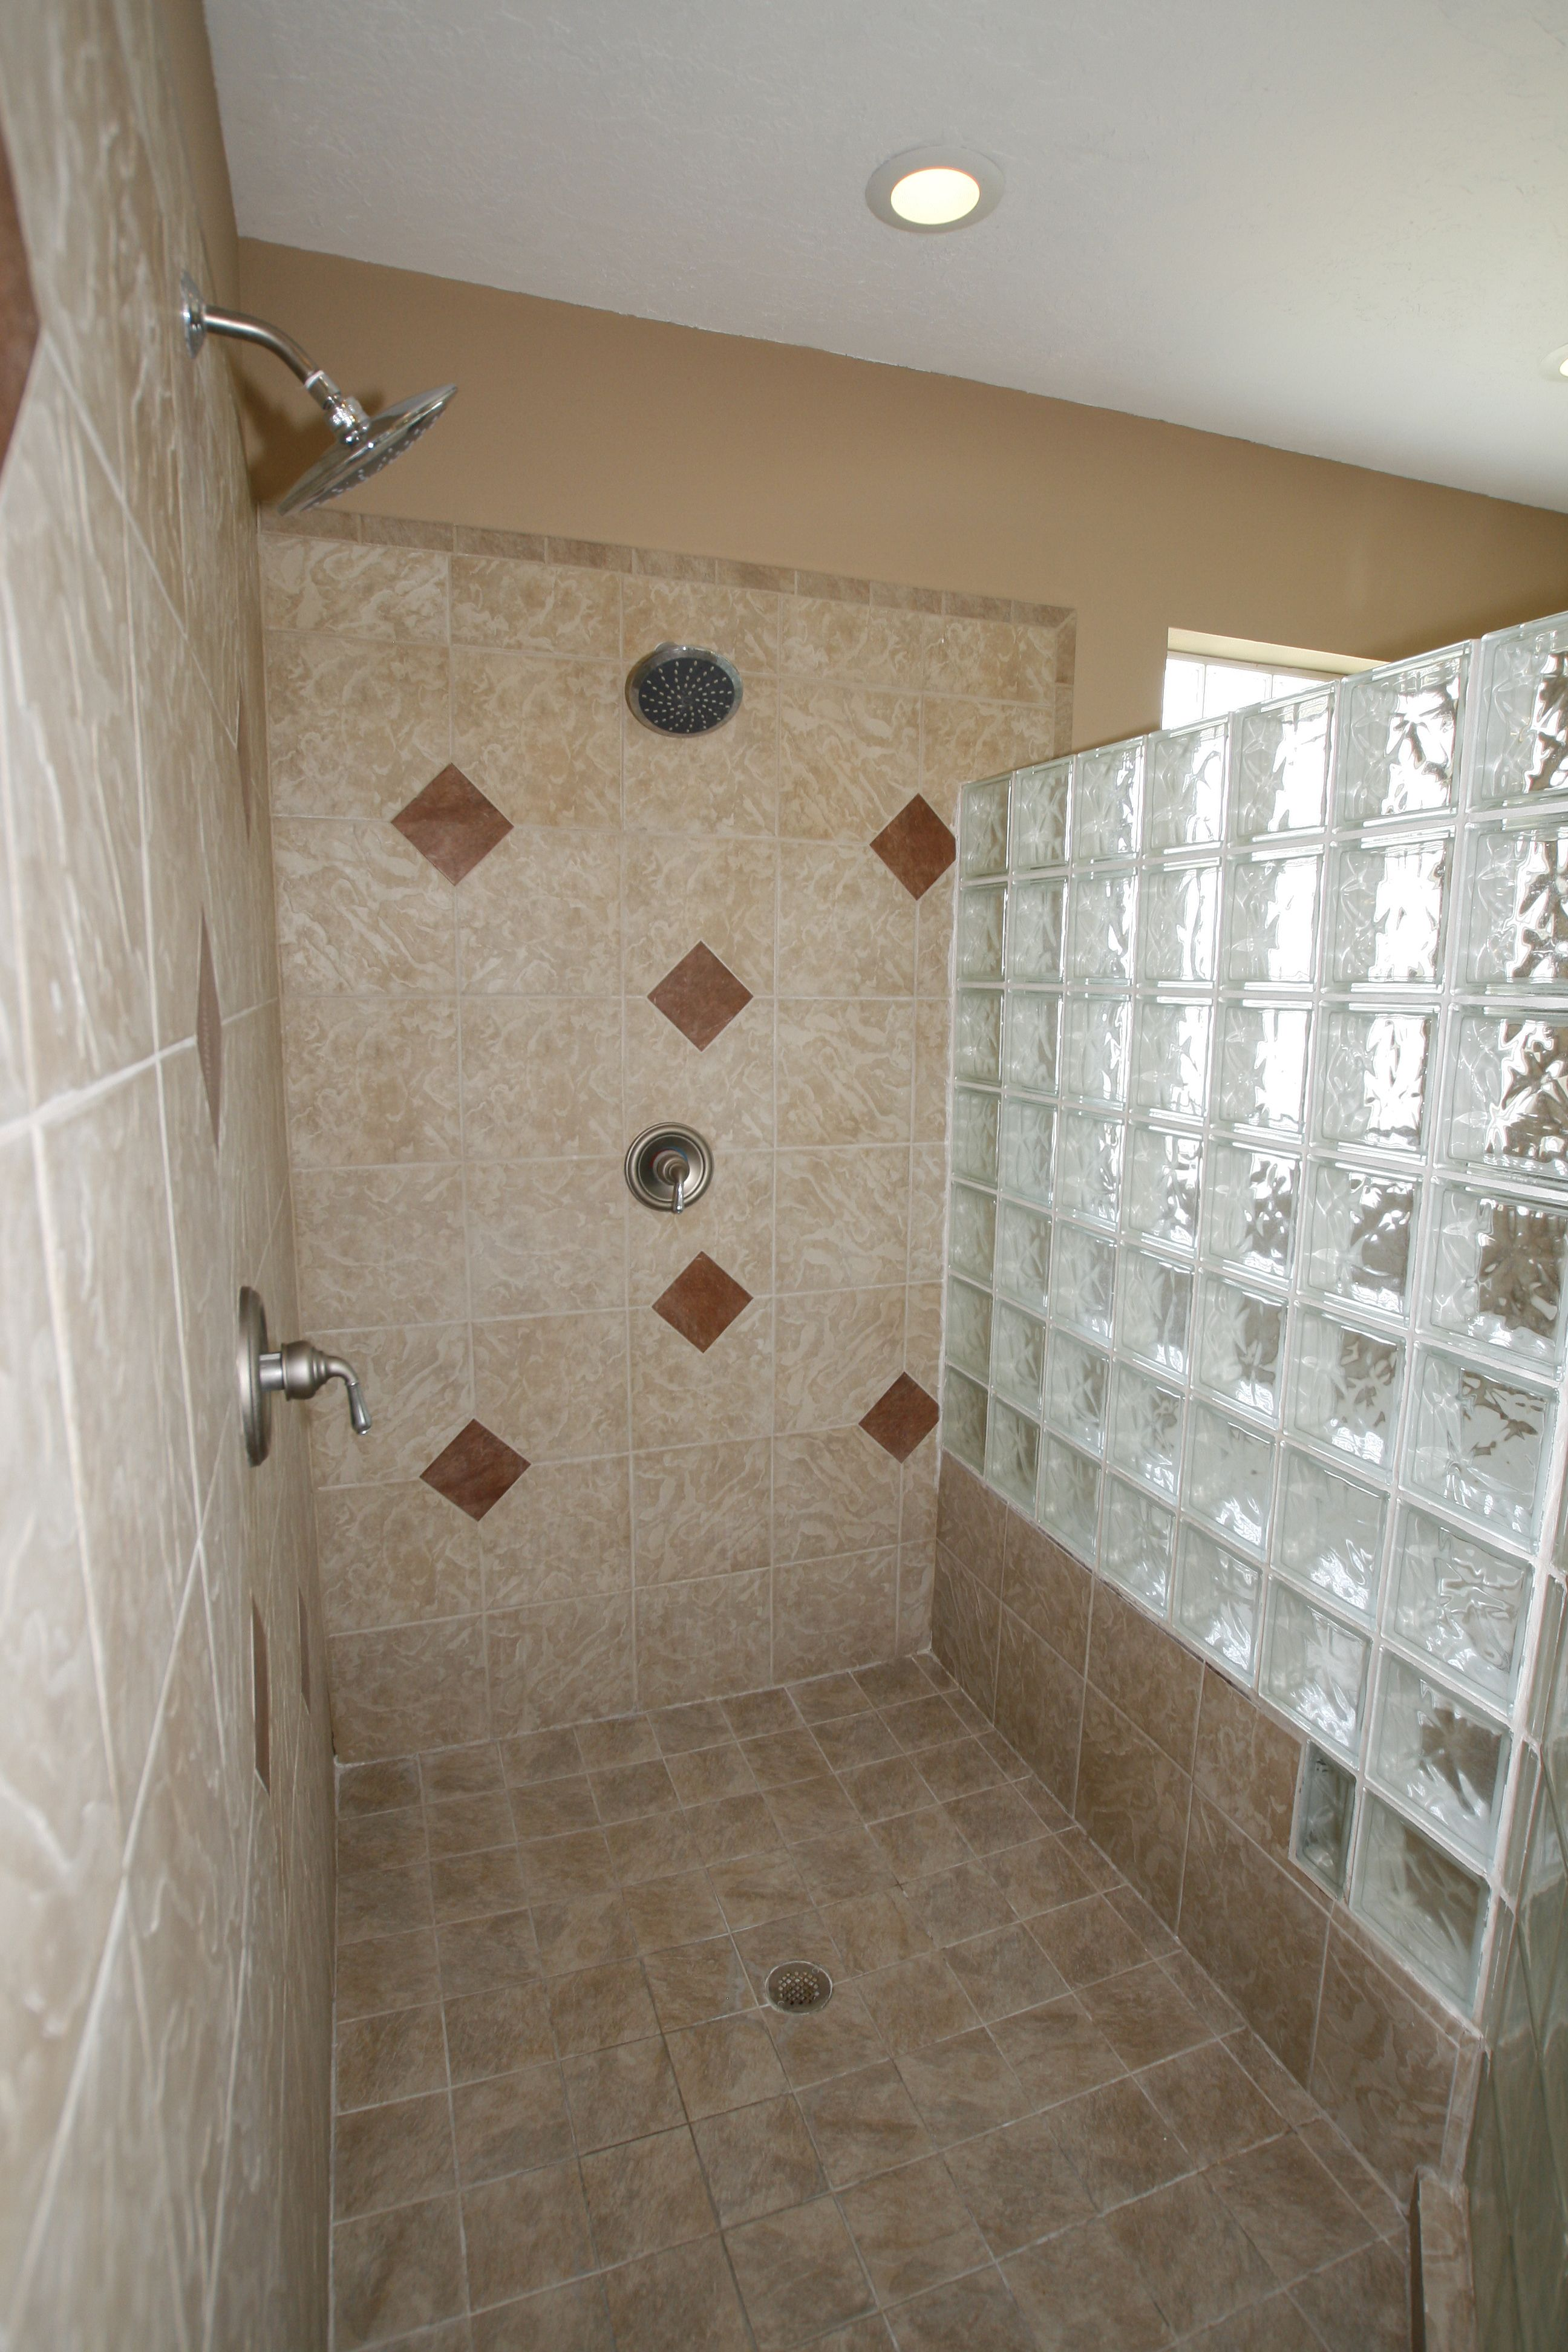 Wet Room Shower Ideas   Astounding White Wet Walk In Shower Ideas With  Fascinating Glass Block. Download Part 92